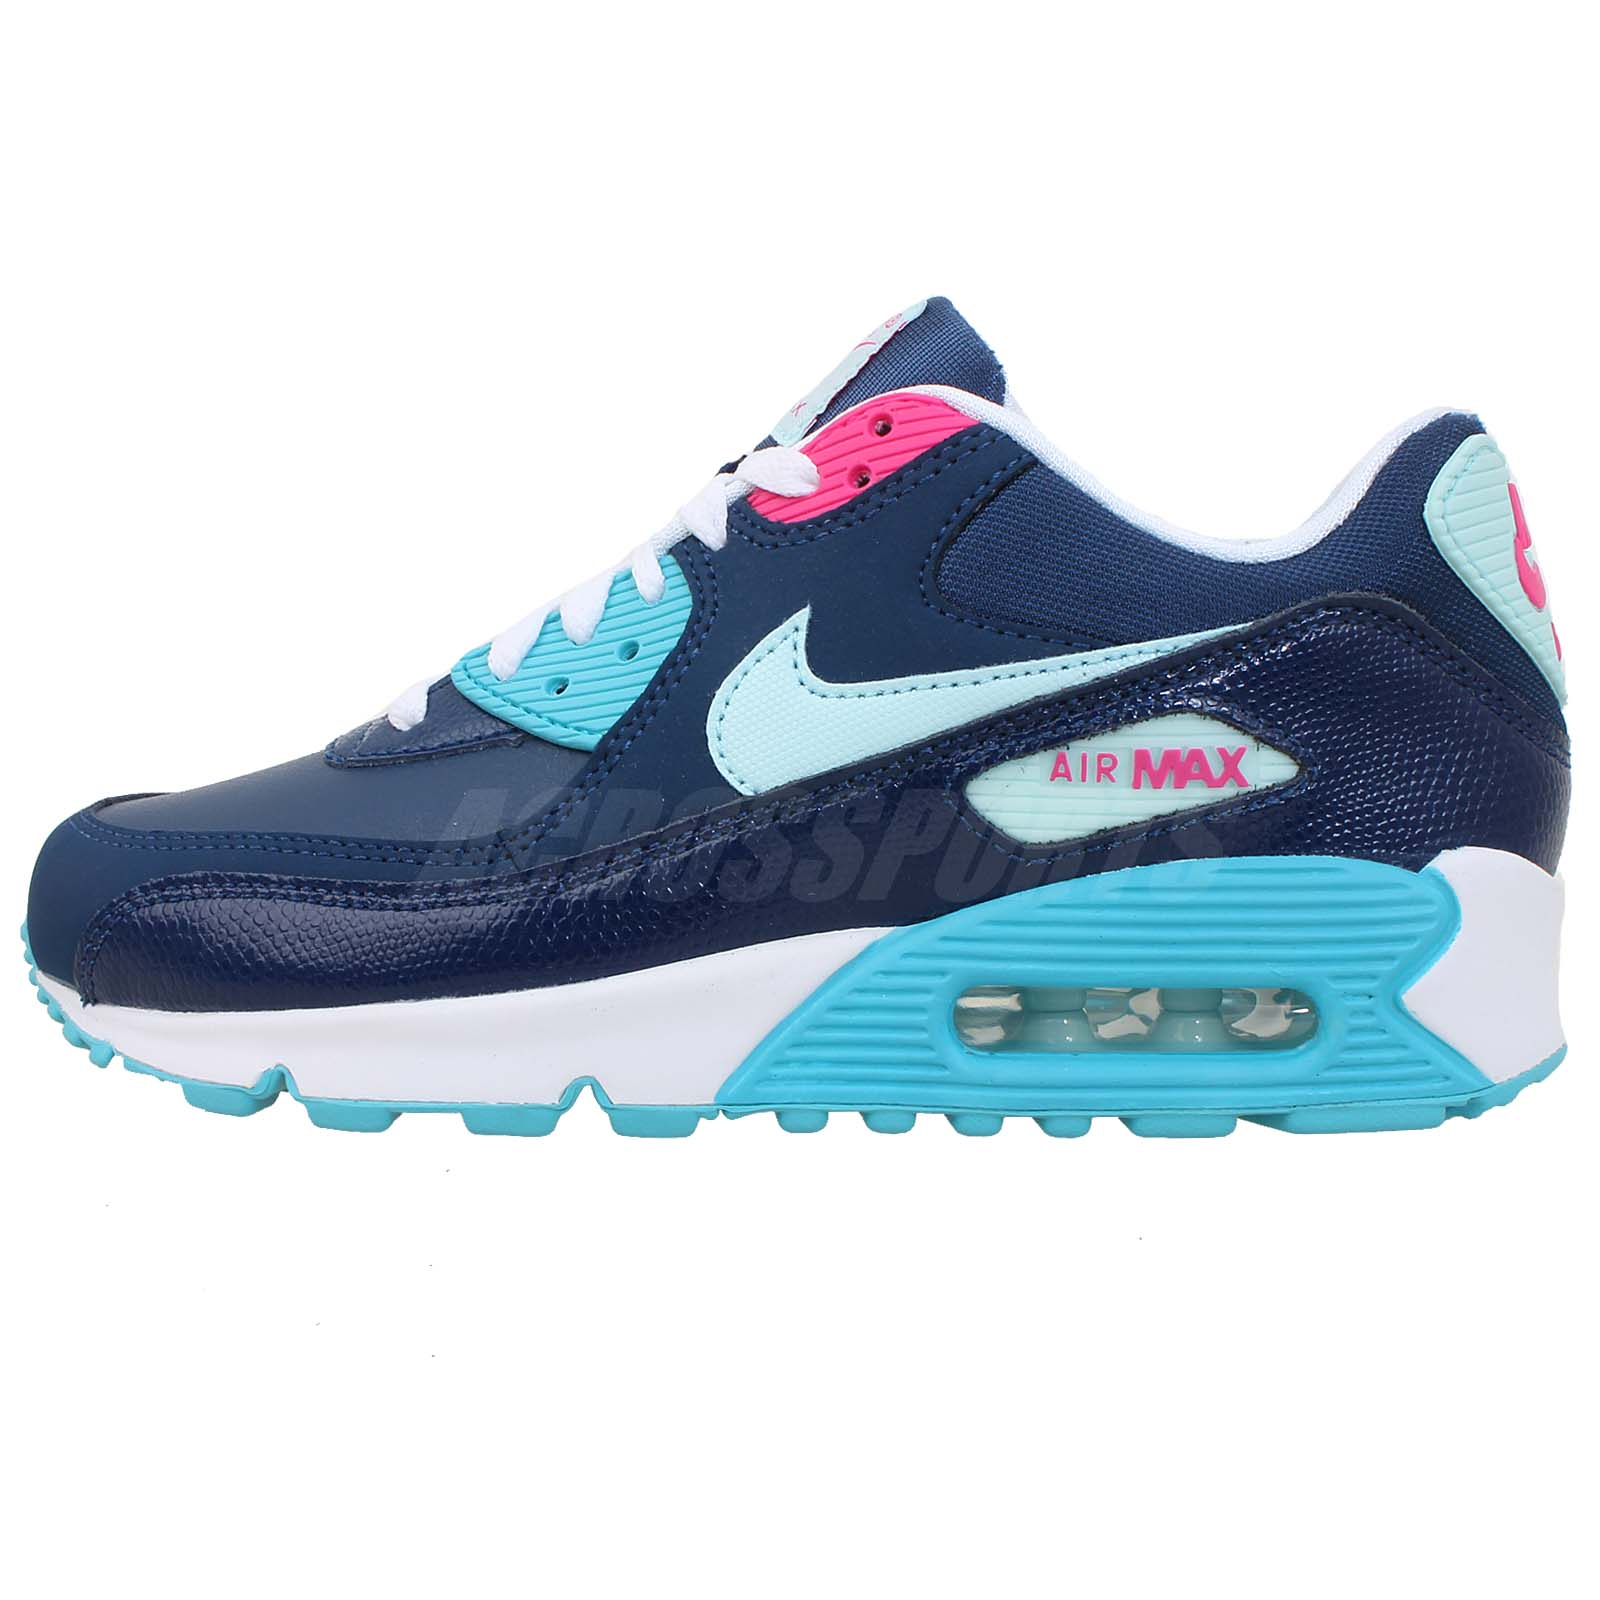 Brilliant Home  Nike Women39s Casual Shoes  Nike Air Max 2013  Women Nike